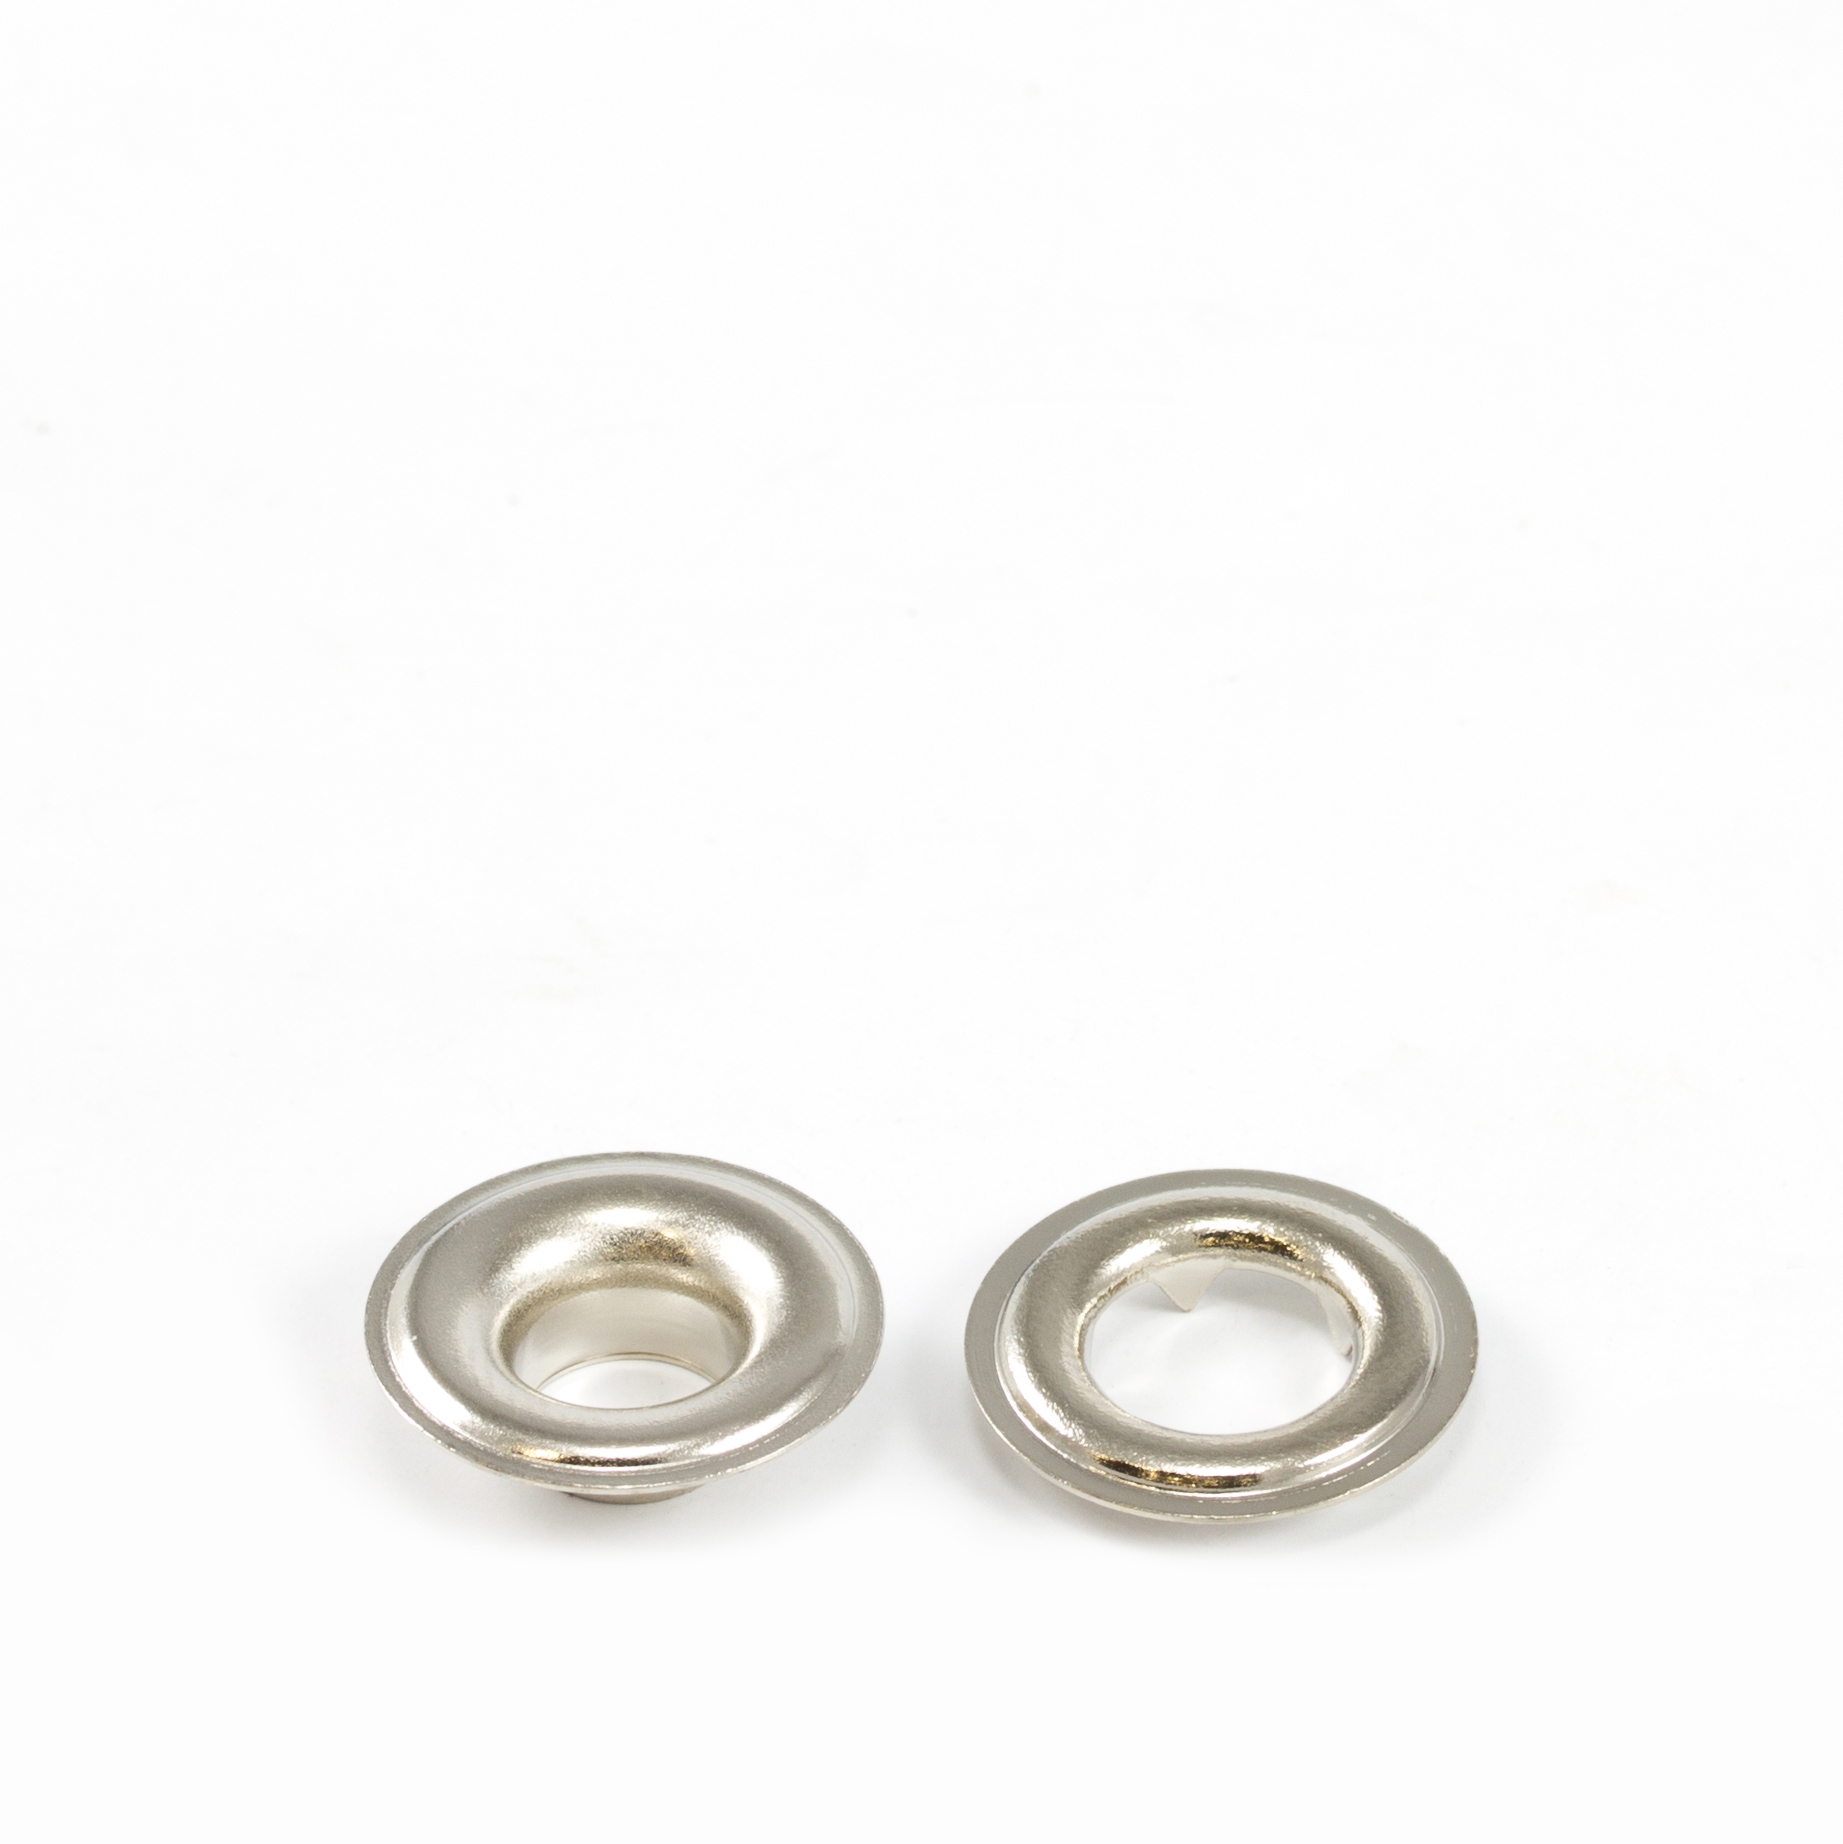 Thumbnail Grommet with Tooth Washer #1 Brass Nickel Plated 9/32 1